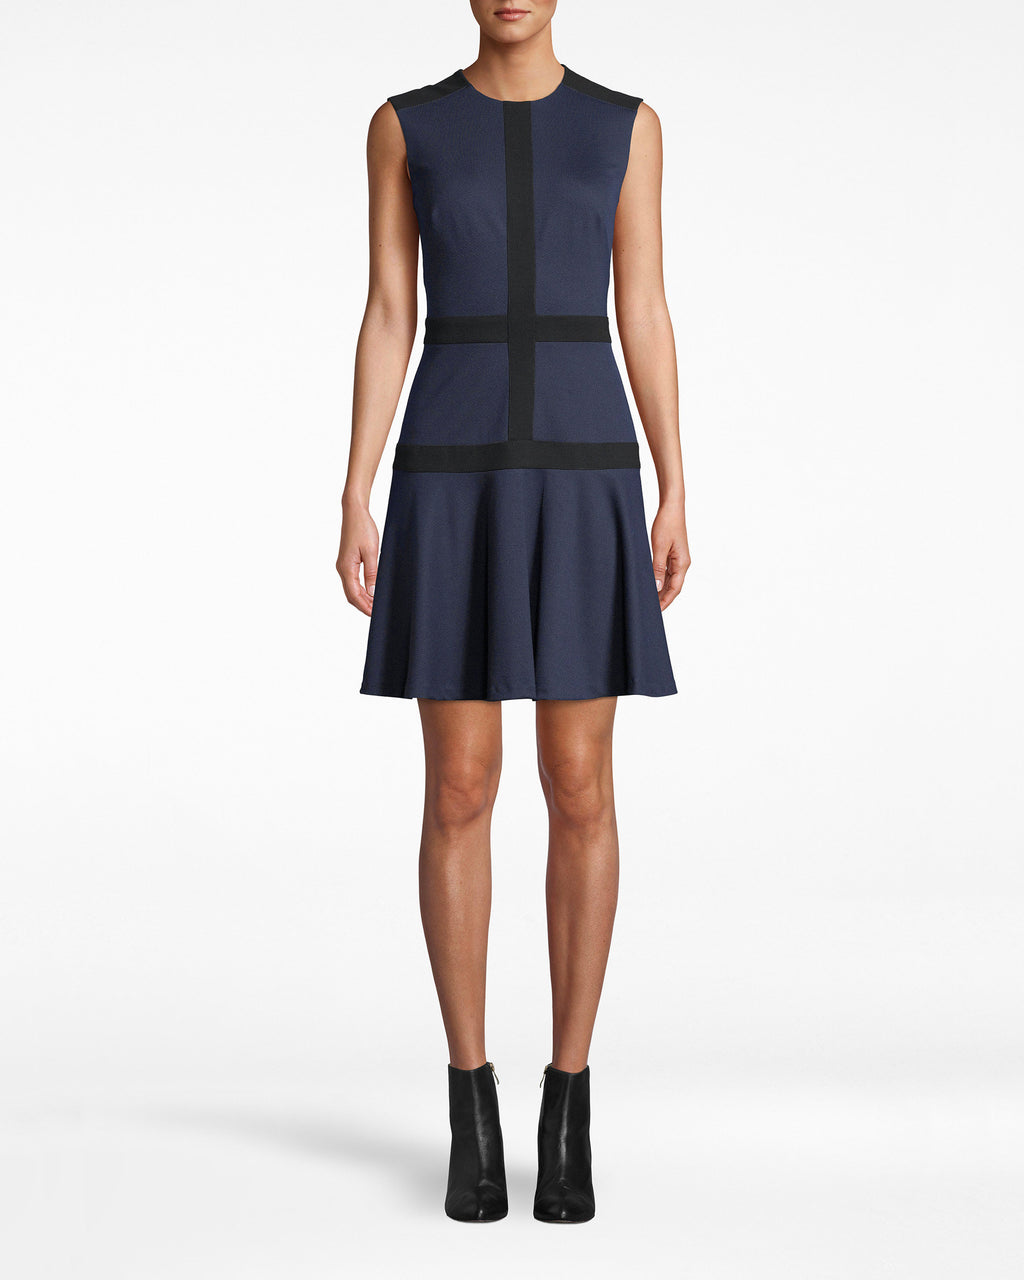 BH10492 - PONTE FLARE DRESS - dresses - short - Structured chic. This Ponte Flare Dress balances its navy hue with symmetrical black fabric work. The hem pleats outwards for an extra feminine touch. Exposed back zipper for closure.